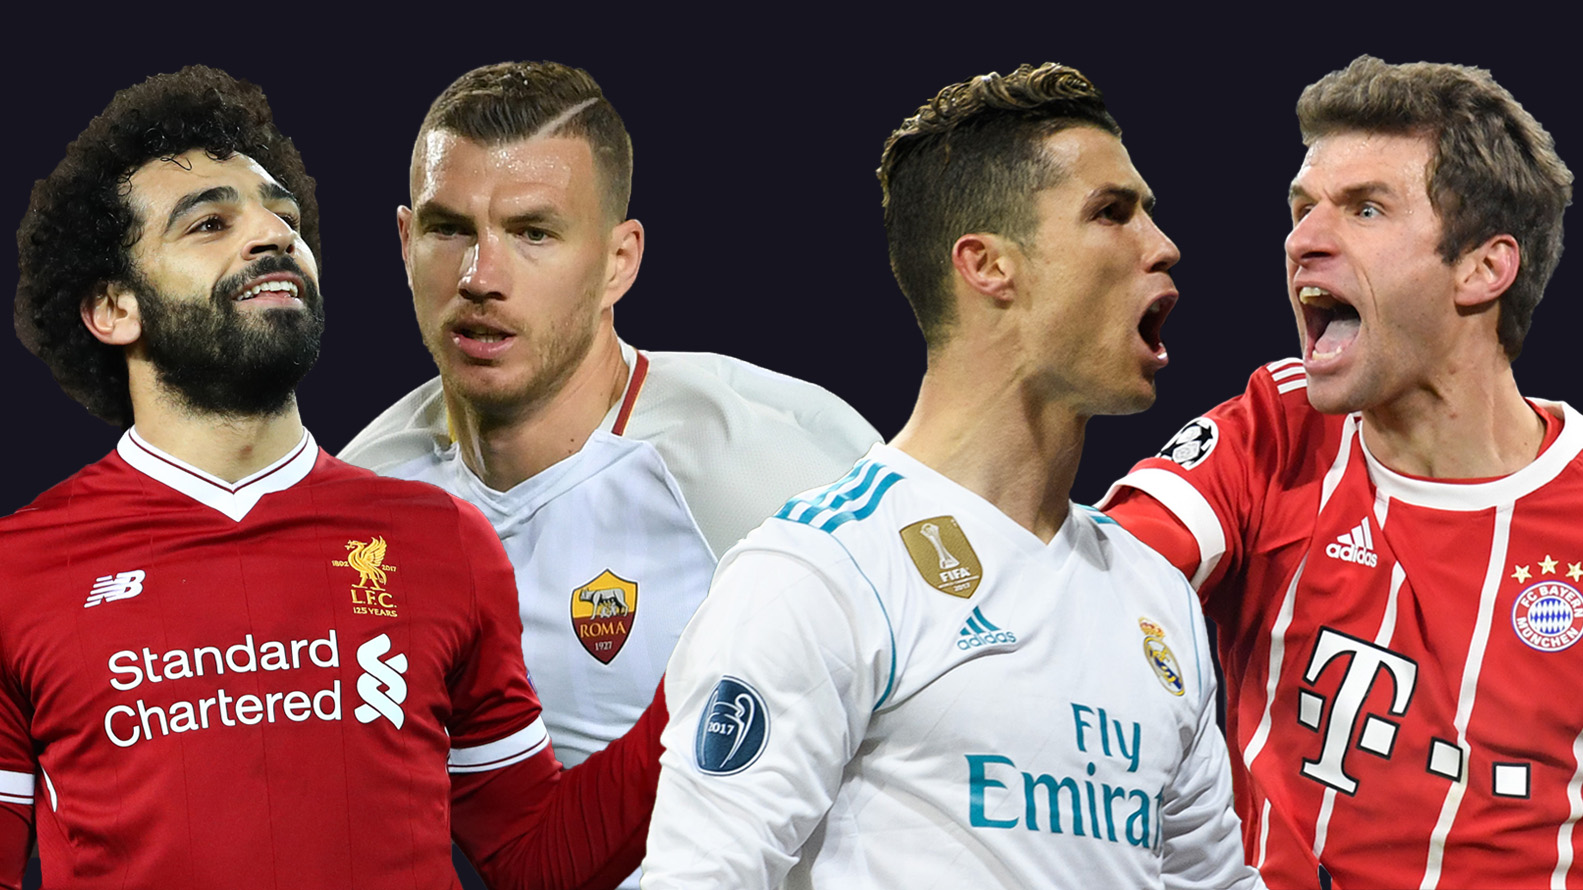 UEFA Champions League 2017/18: Best XI of the quarter-finals